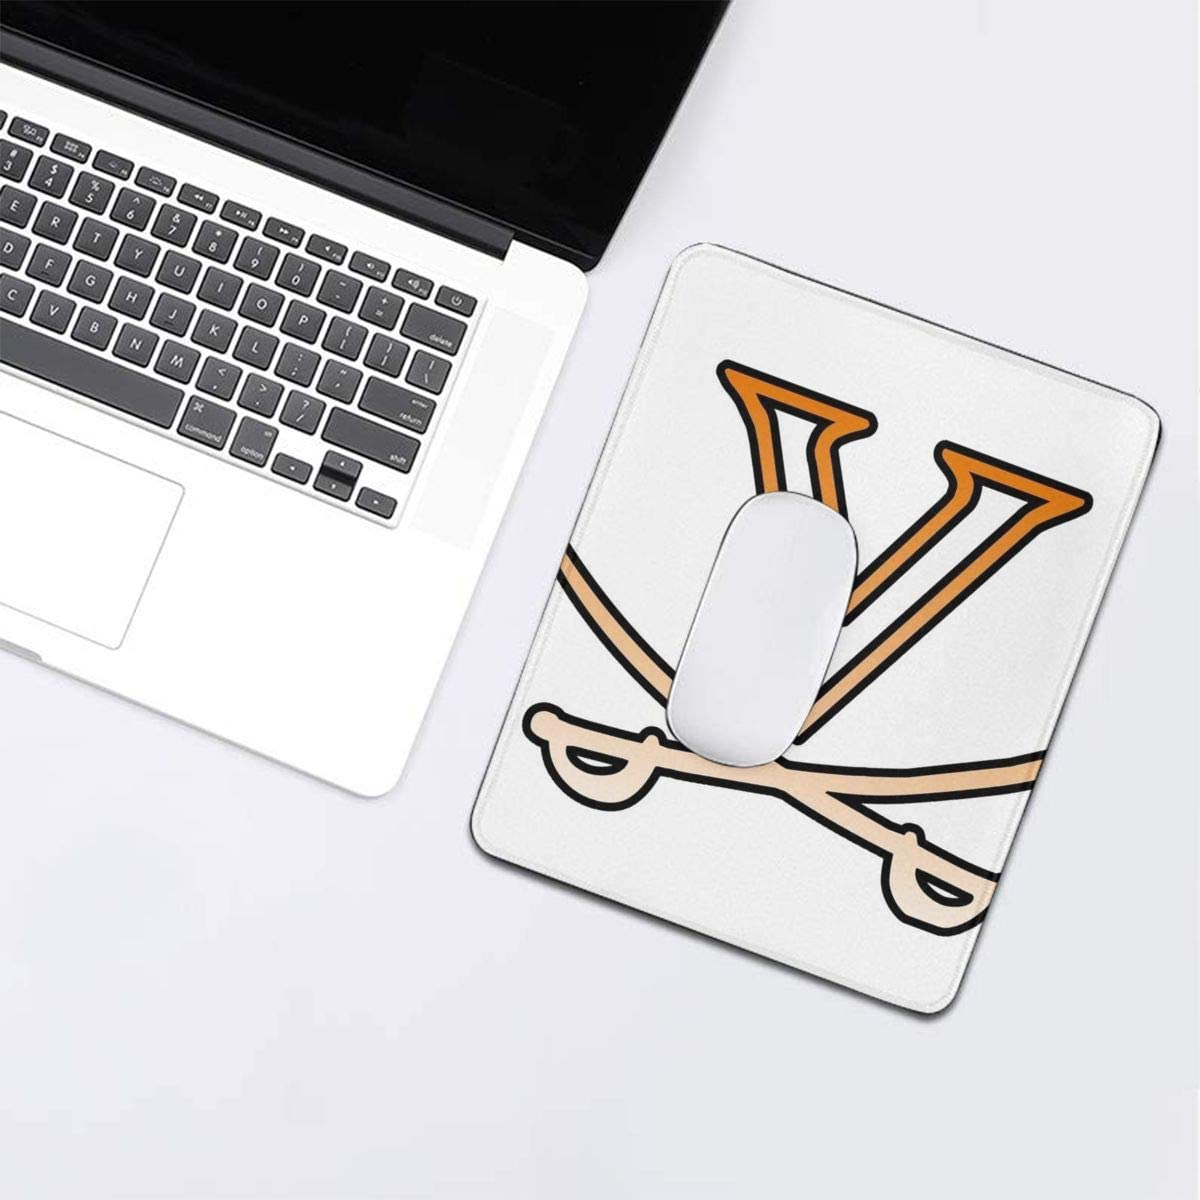 Uva Hemming The Mouse Pad 10X12 Inch Esports